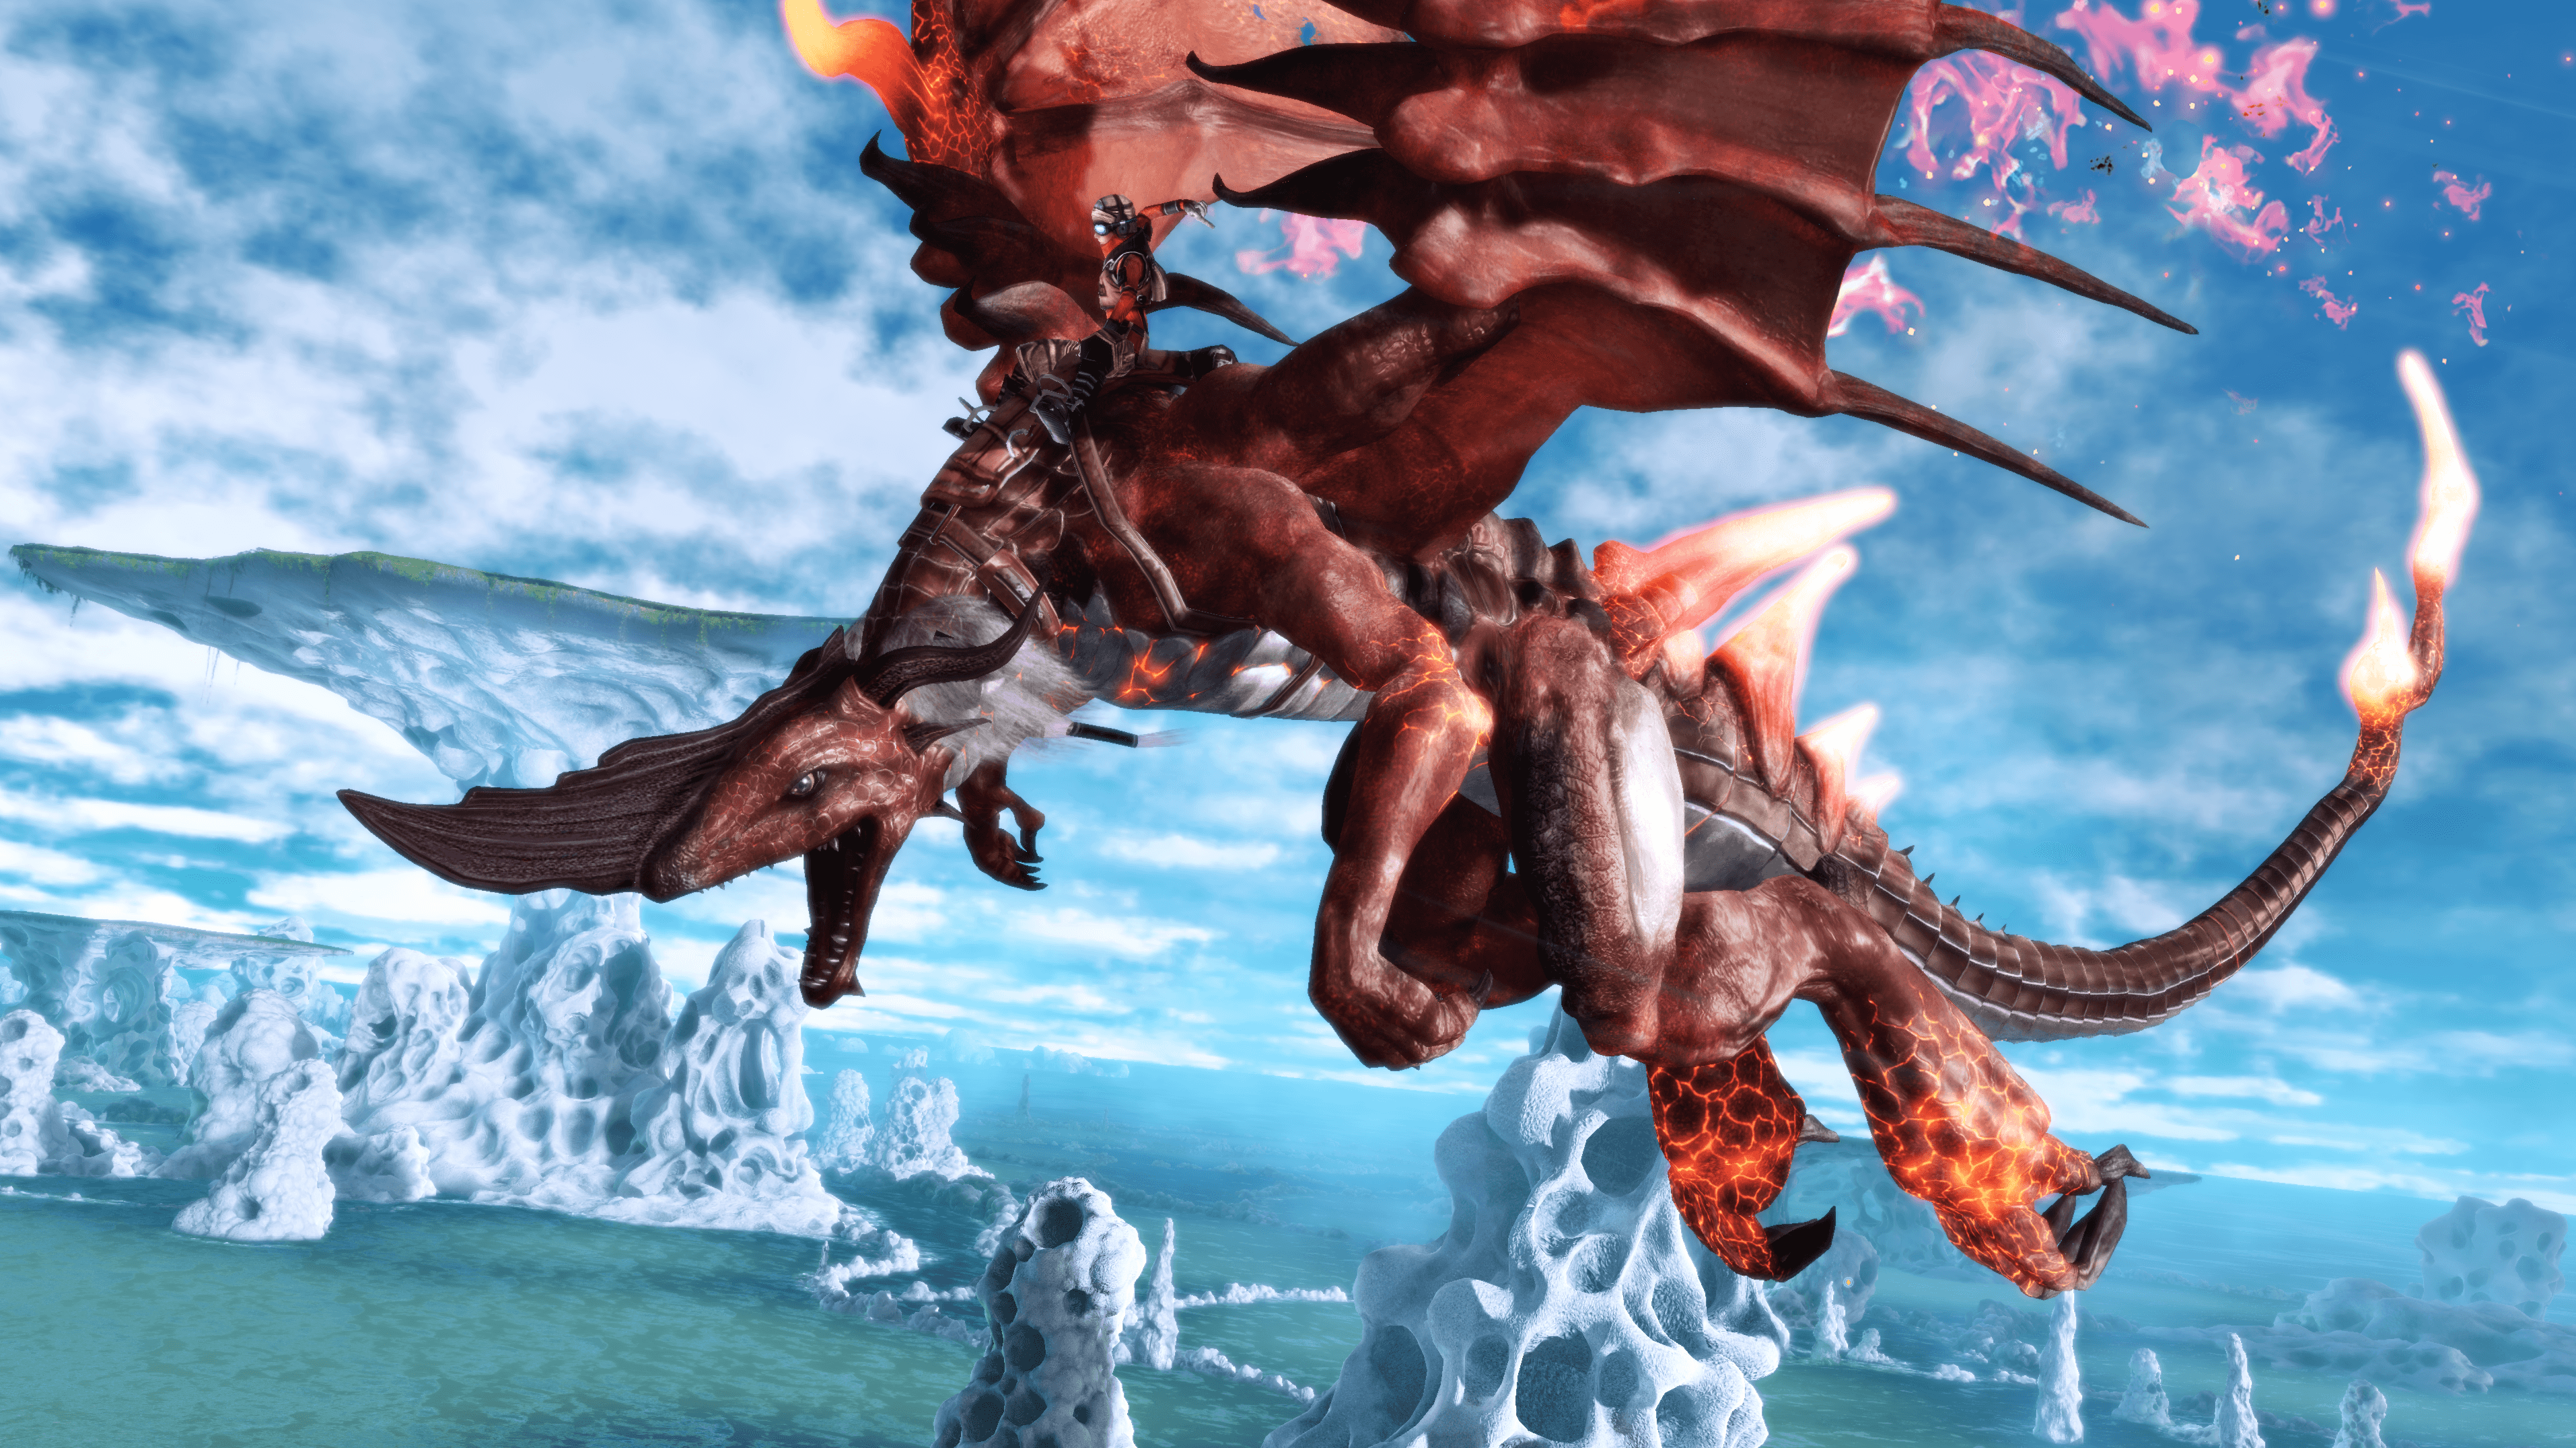 This TGS Crimson Dragon Trailer Features Dragon-Fighting Goodness